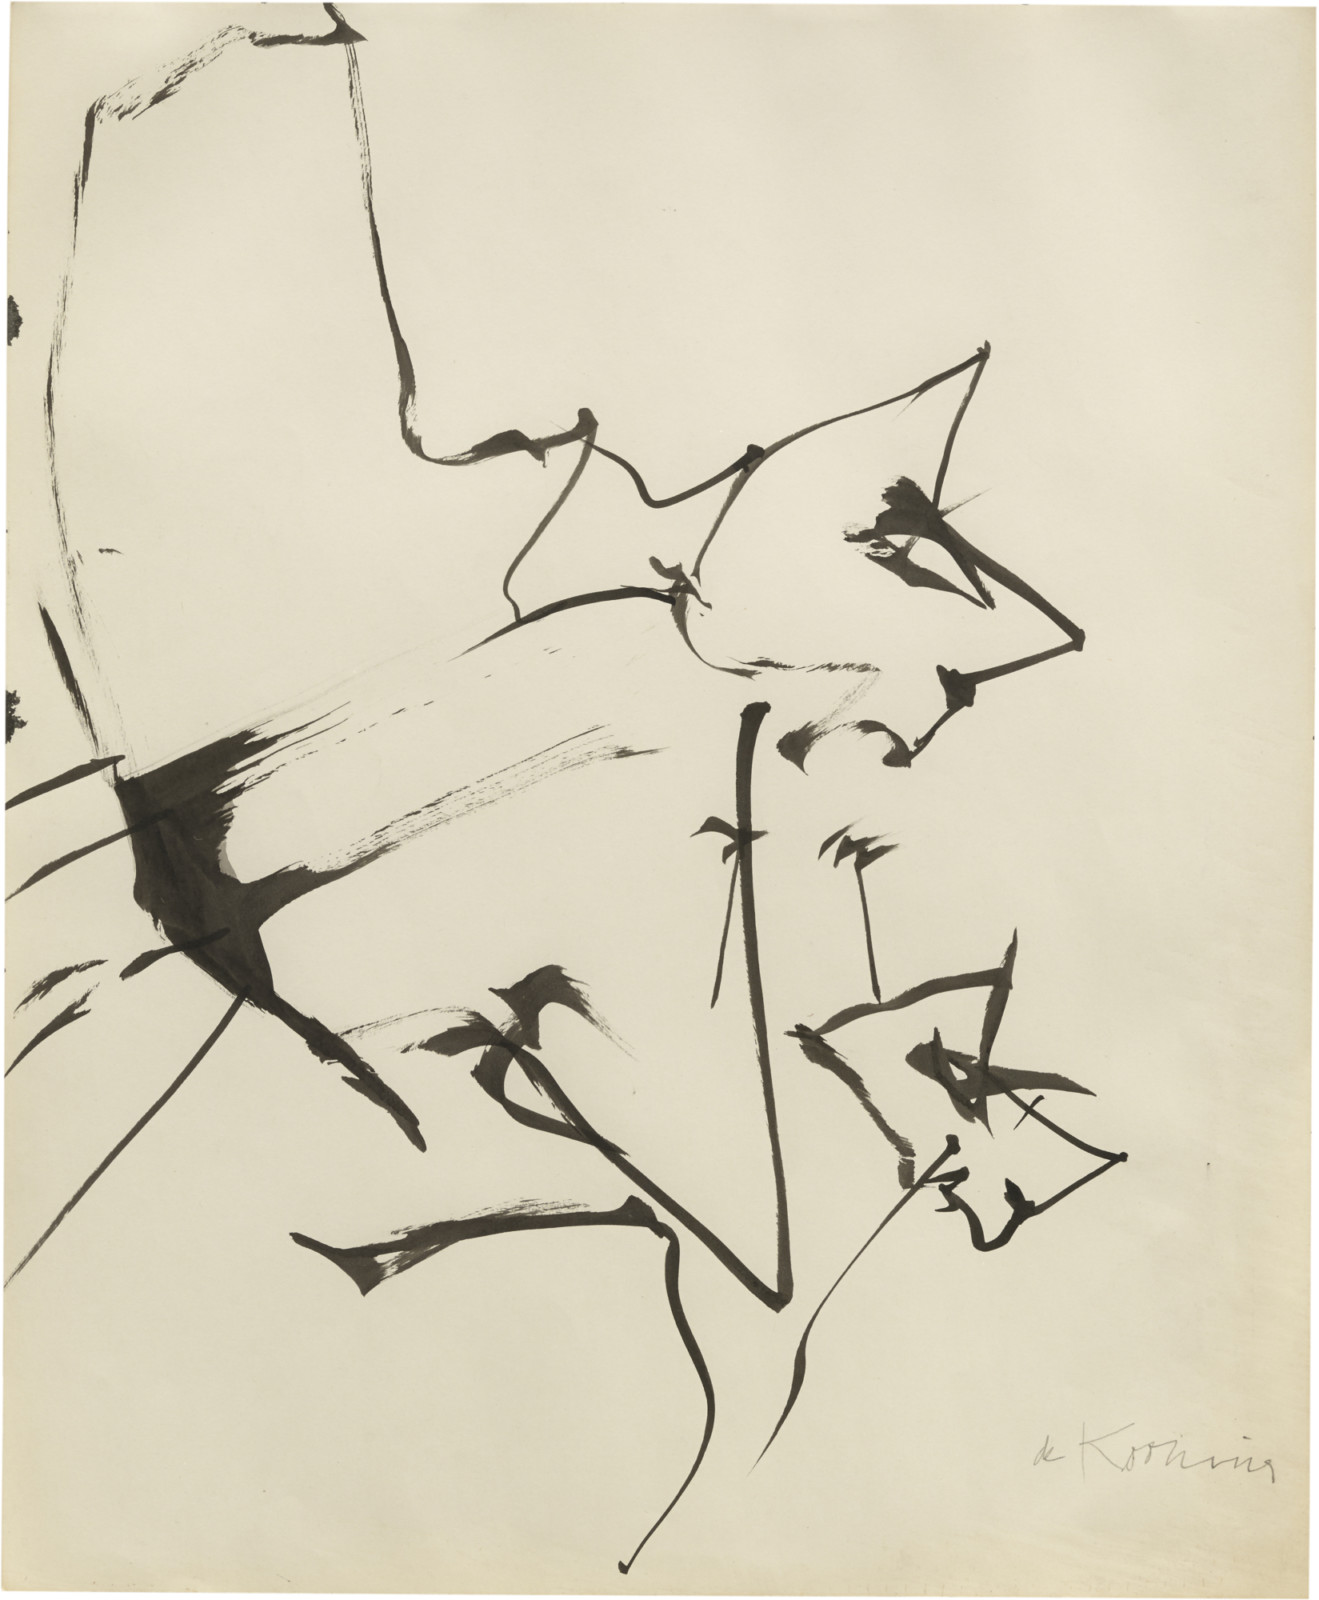 Drawing, dated 1958